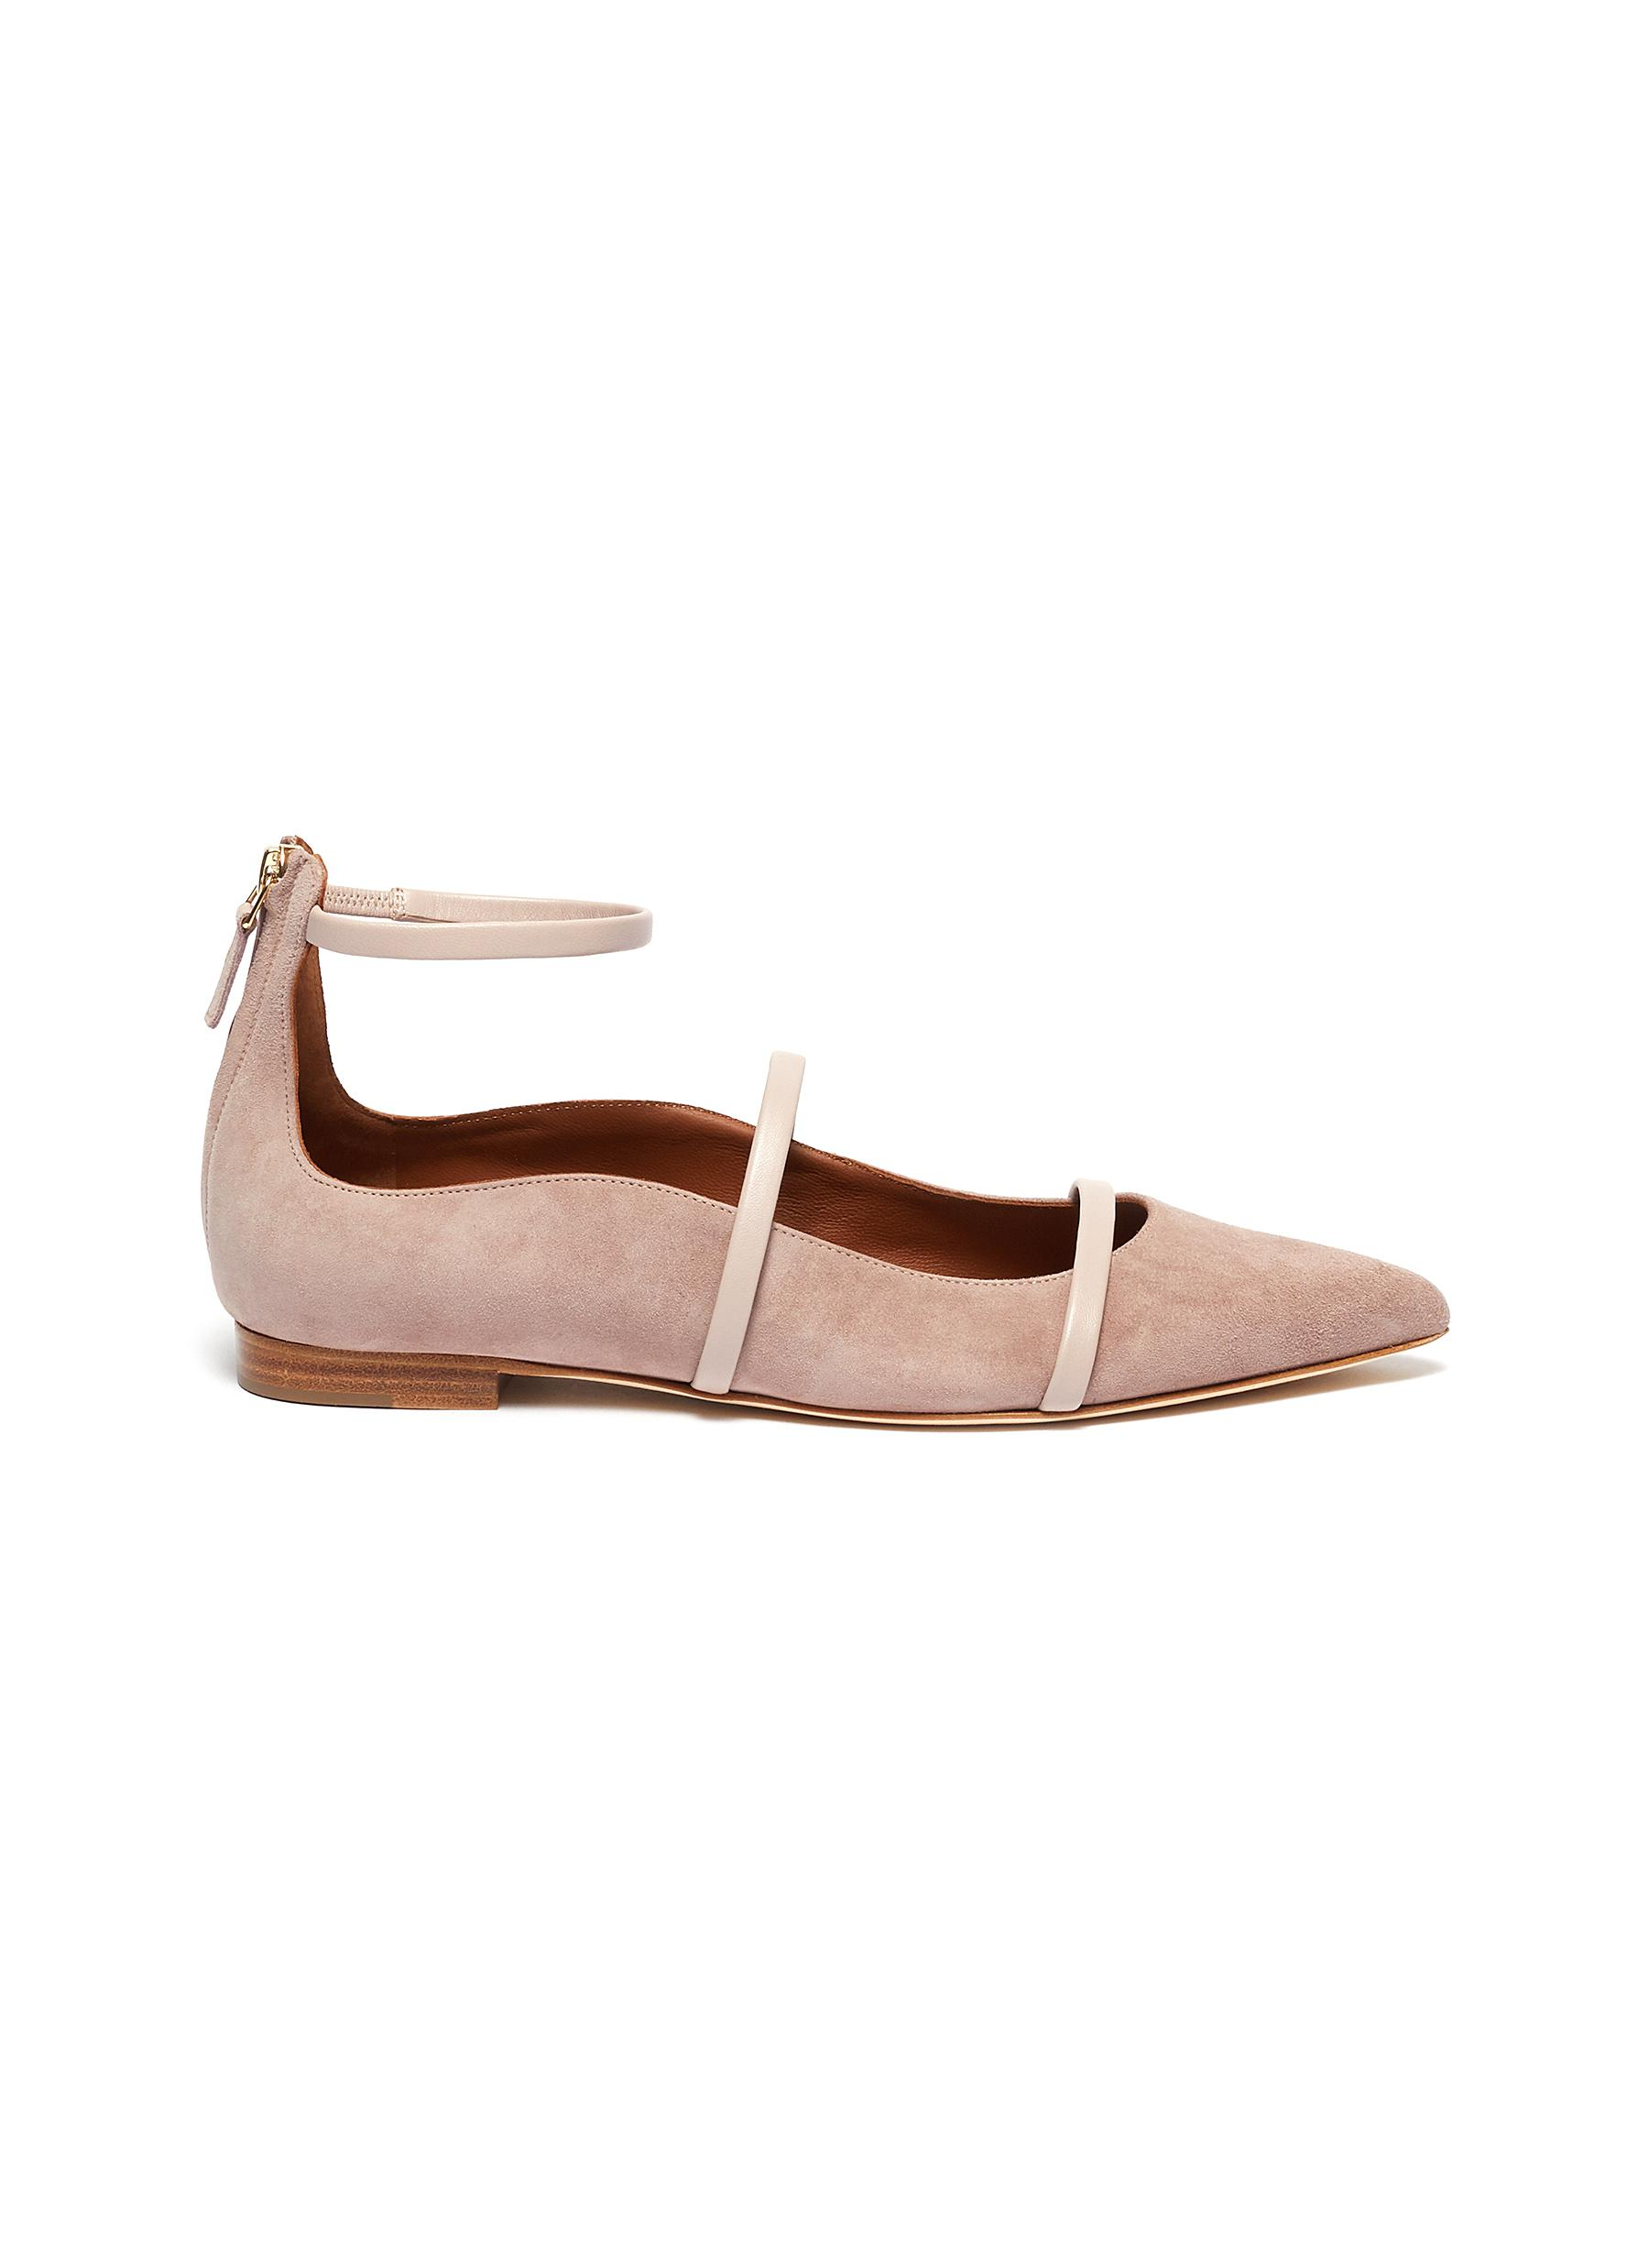 Robyn ankle strappy leather flats by Malone Souliers